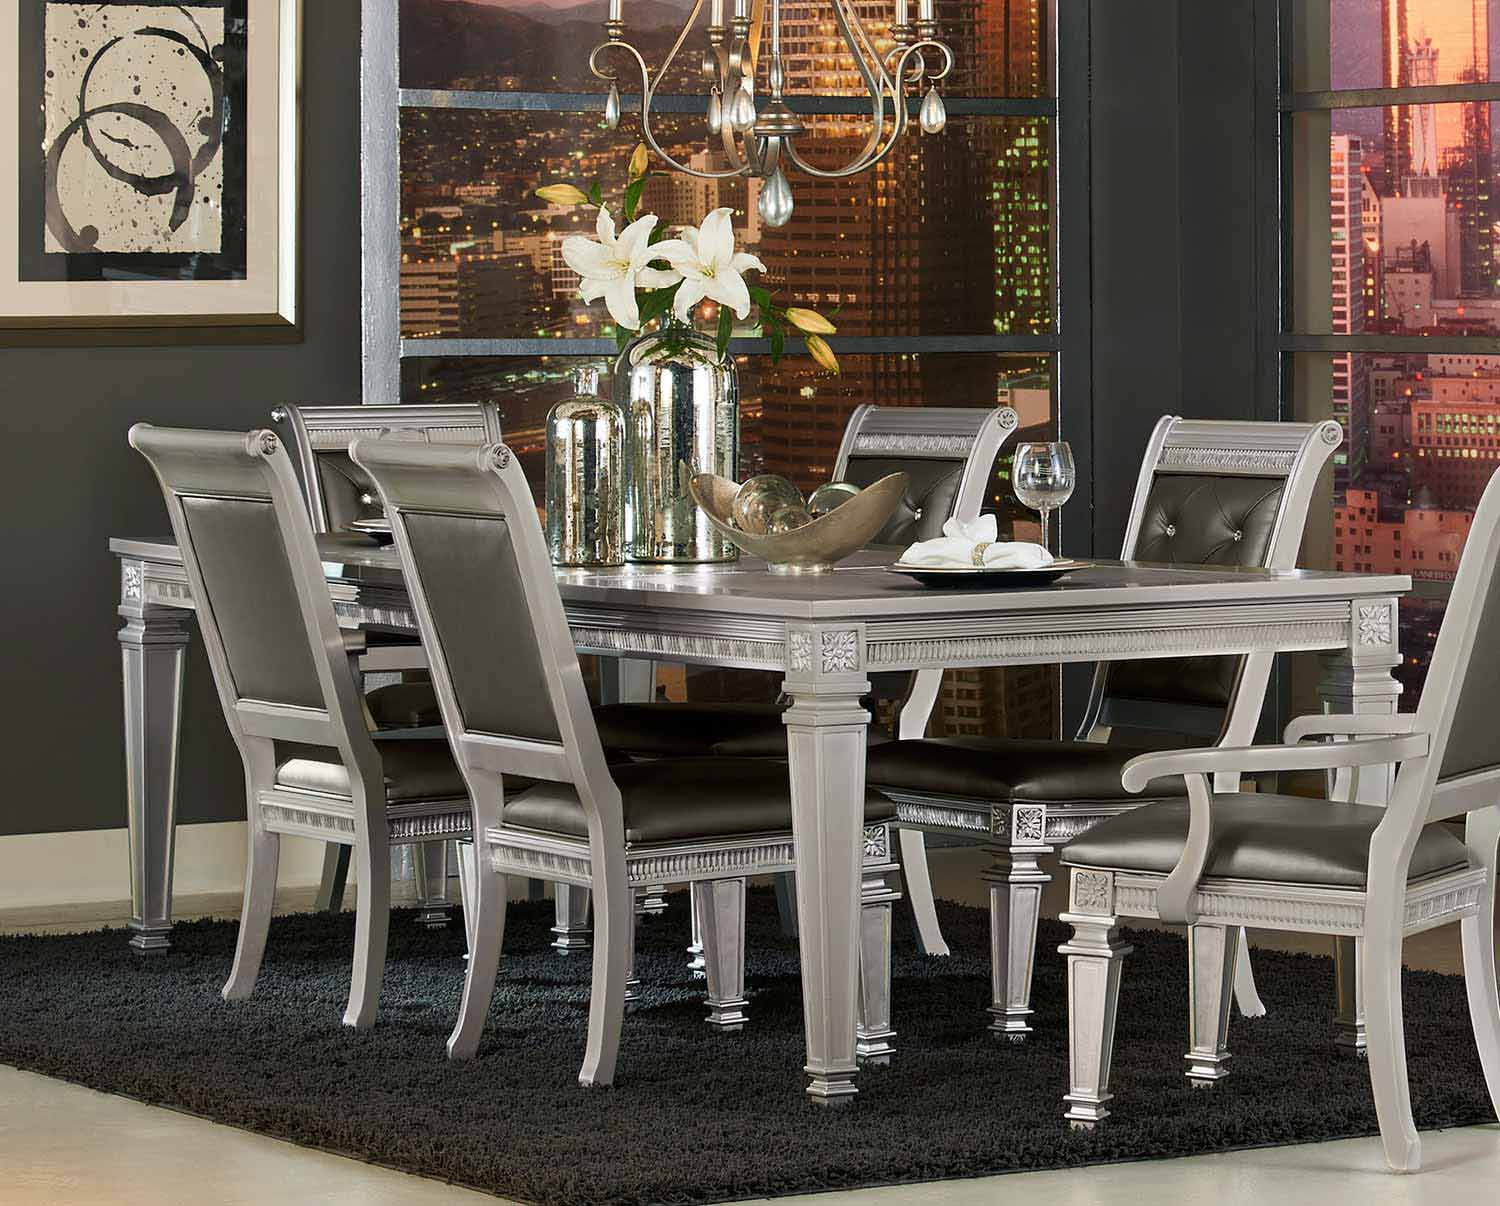 Homelegance Bevelle Dining Table with Leaf - Silver